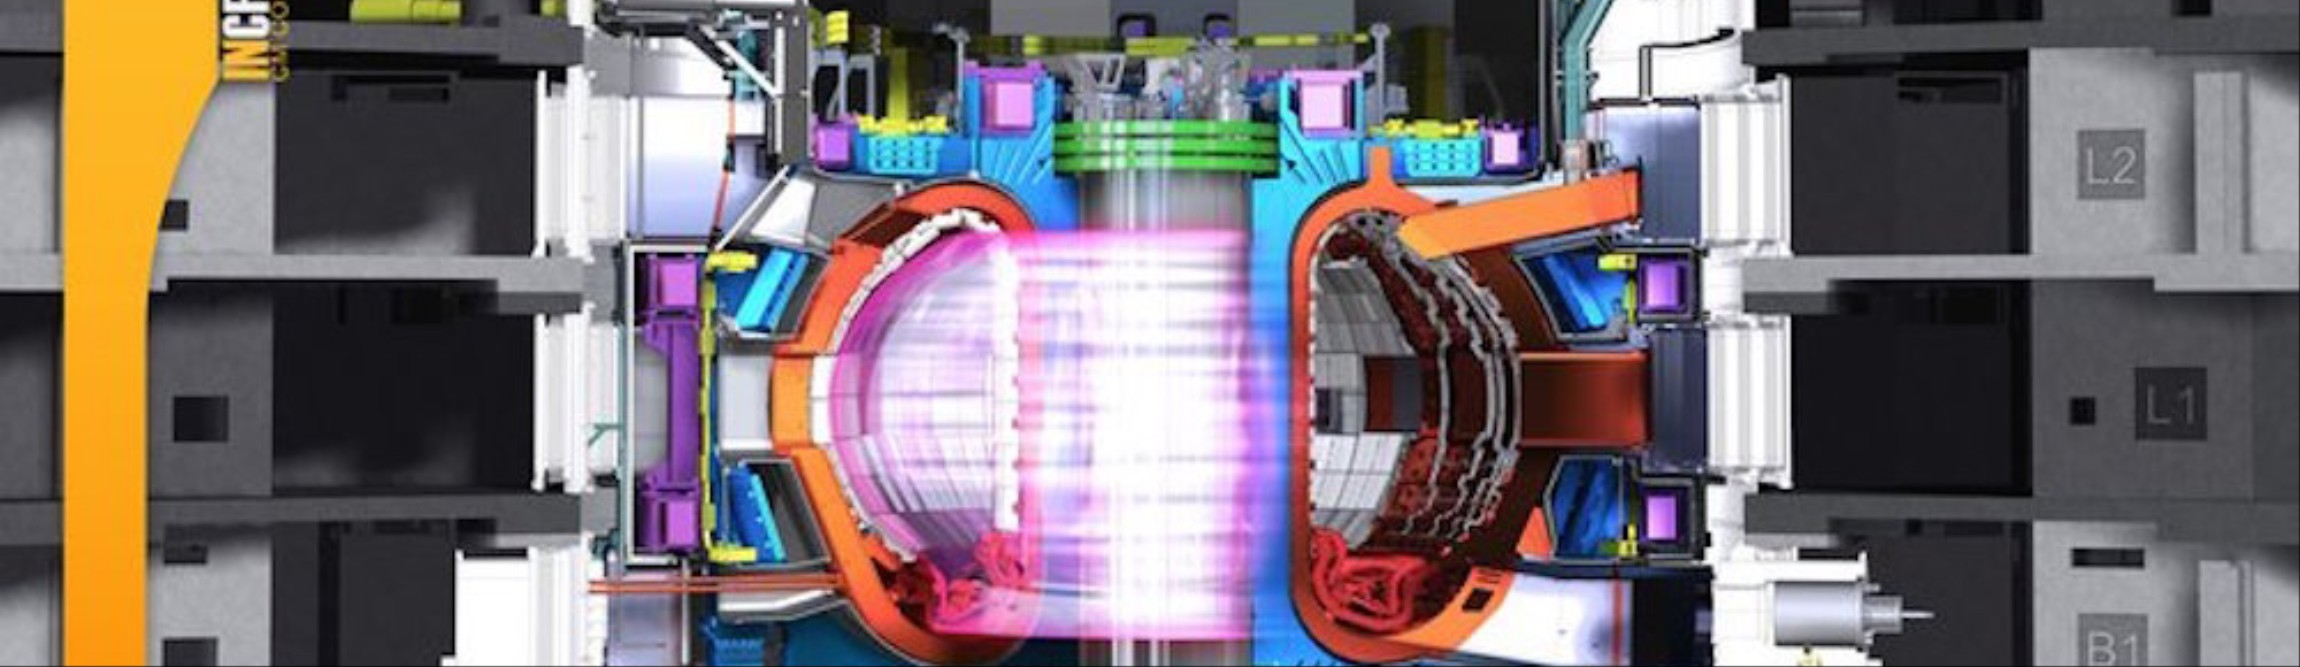 Space tech is helping engineer the world 39 s biggest nuclear fusion reactor motherboard - Small reactor space engineers gallery ...